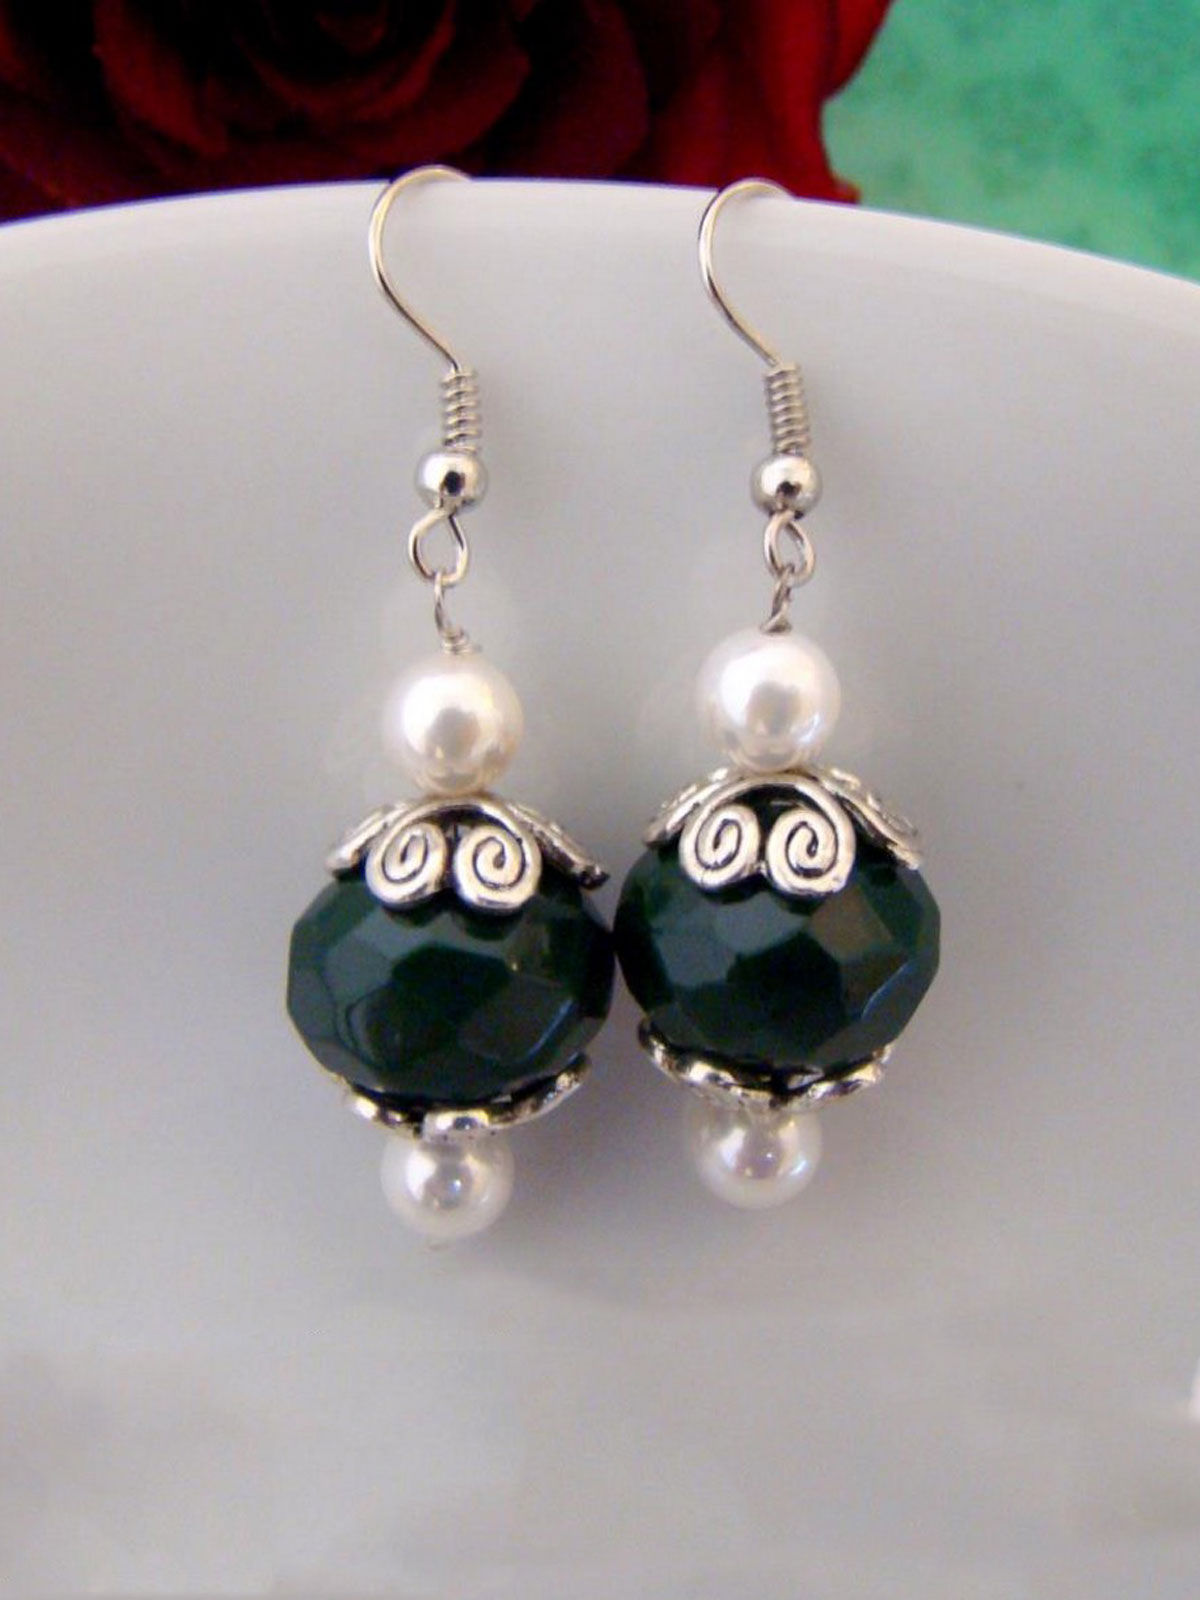 Green Dots earrings